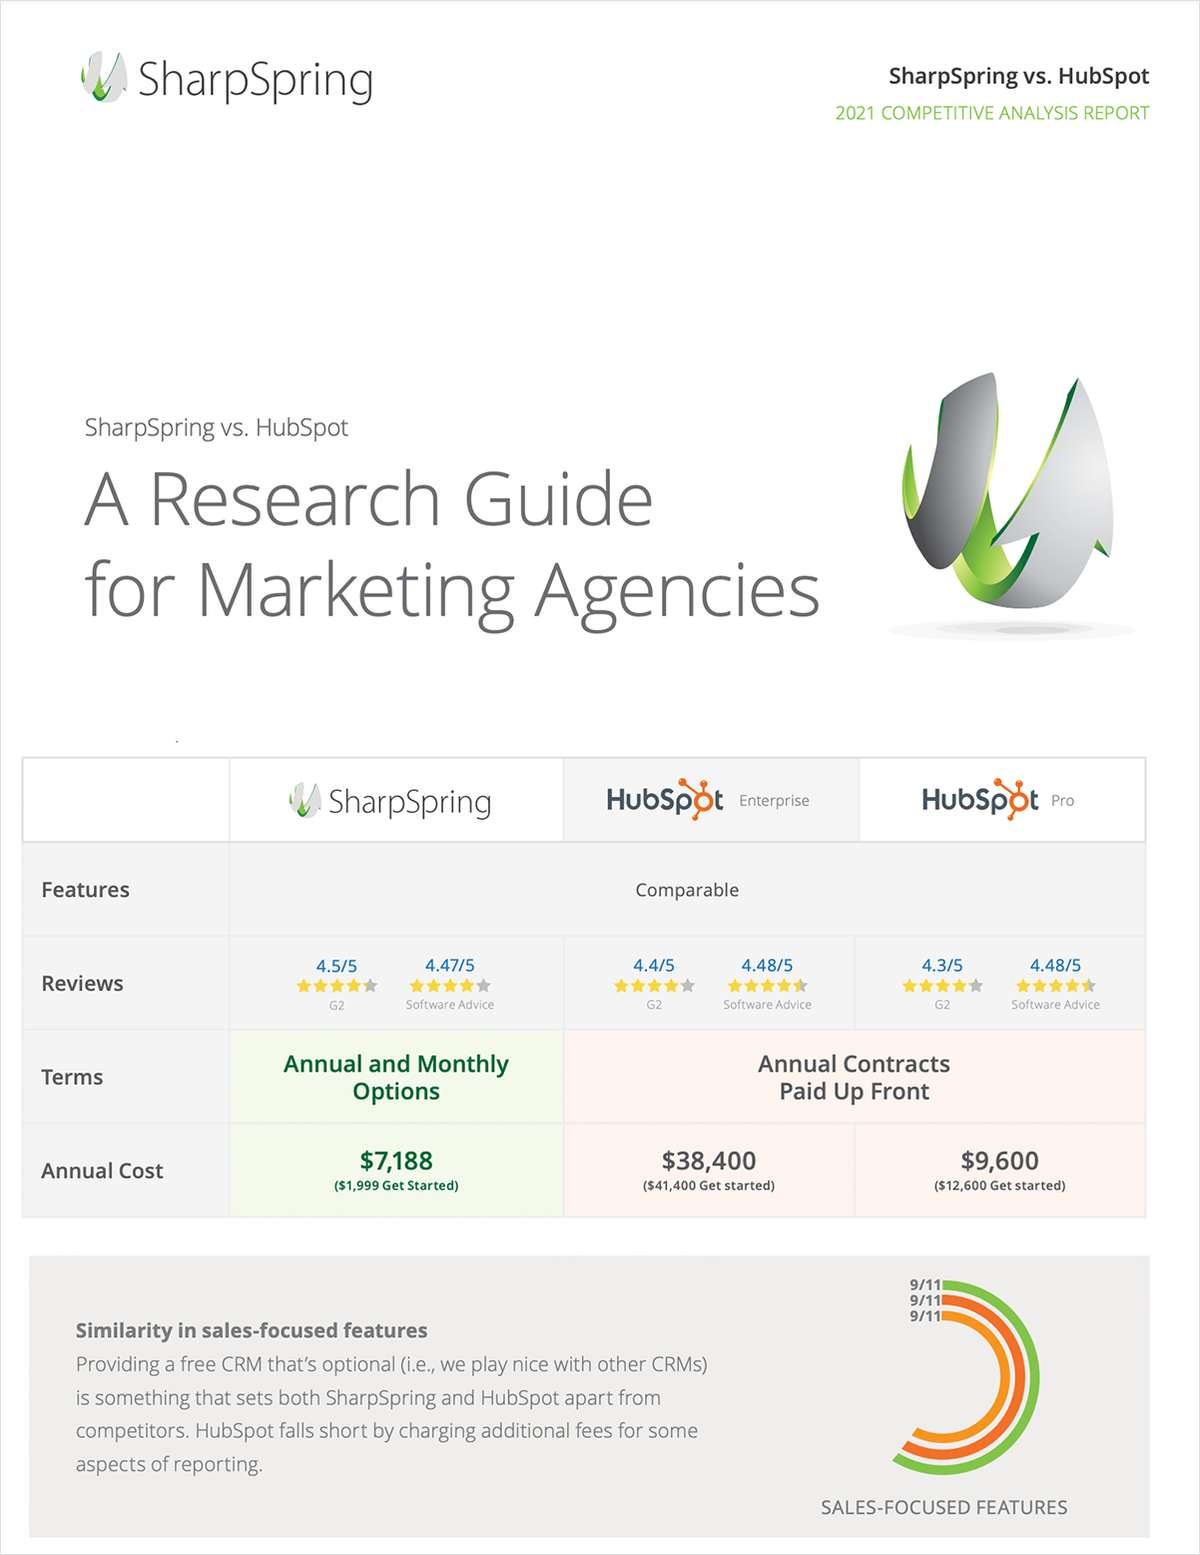 Compare SharpSpring and HubSpot - A Research Guide for Agencies